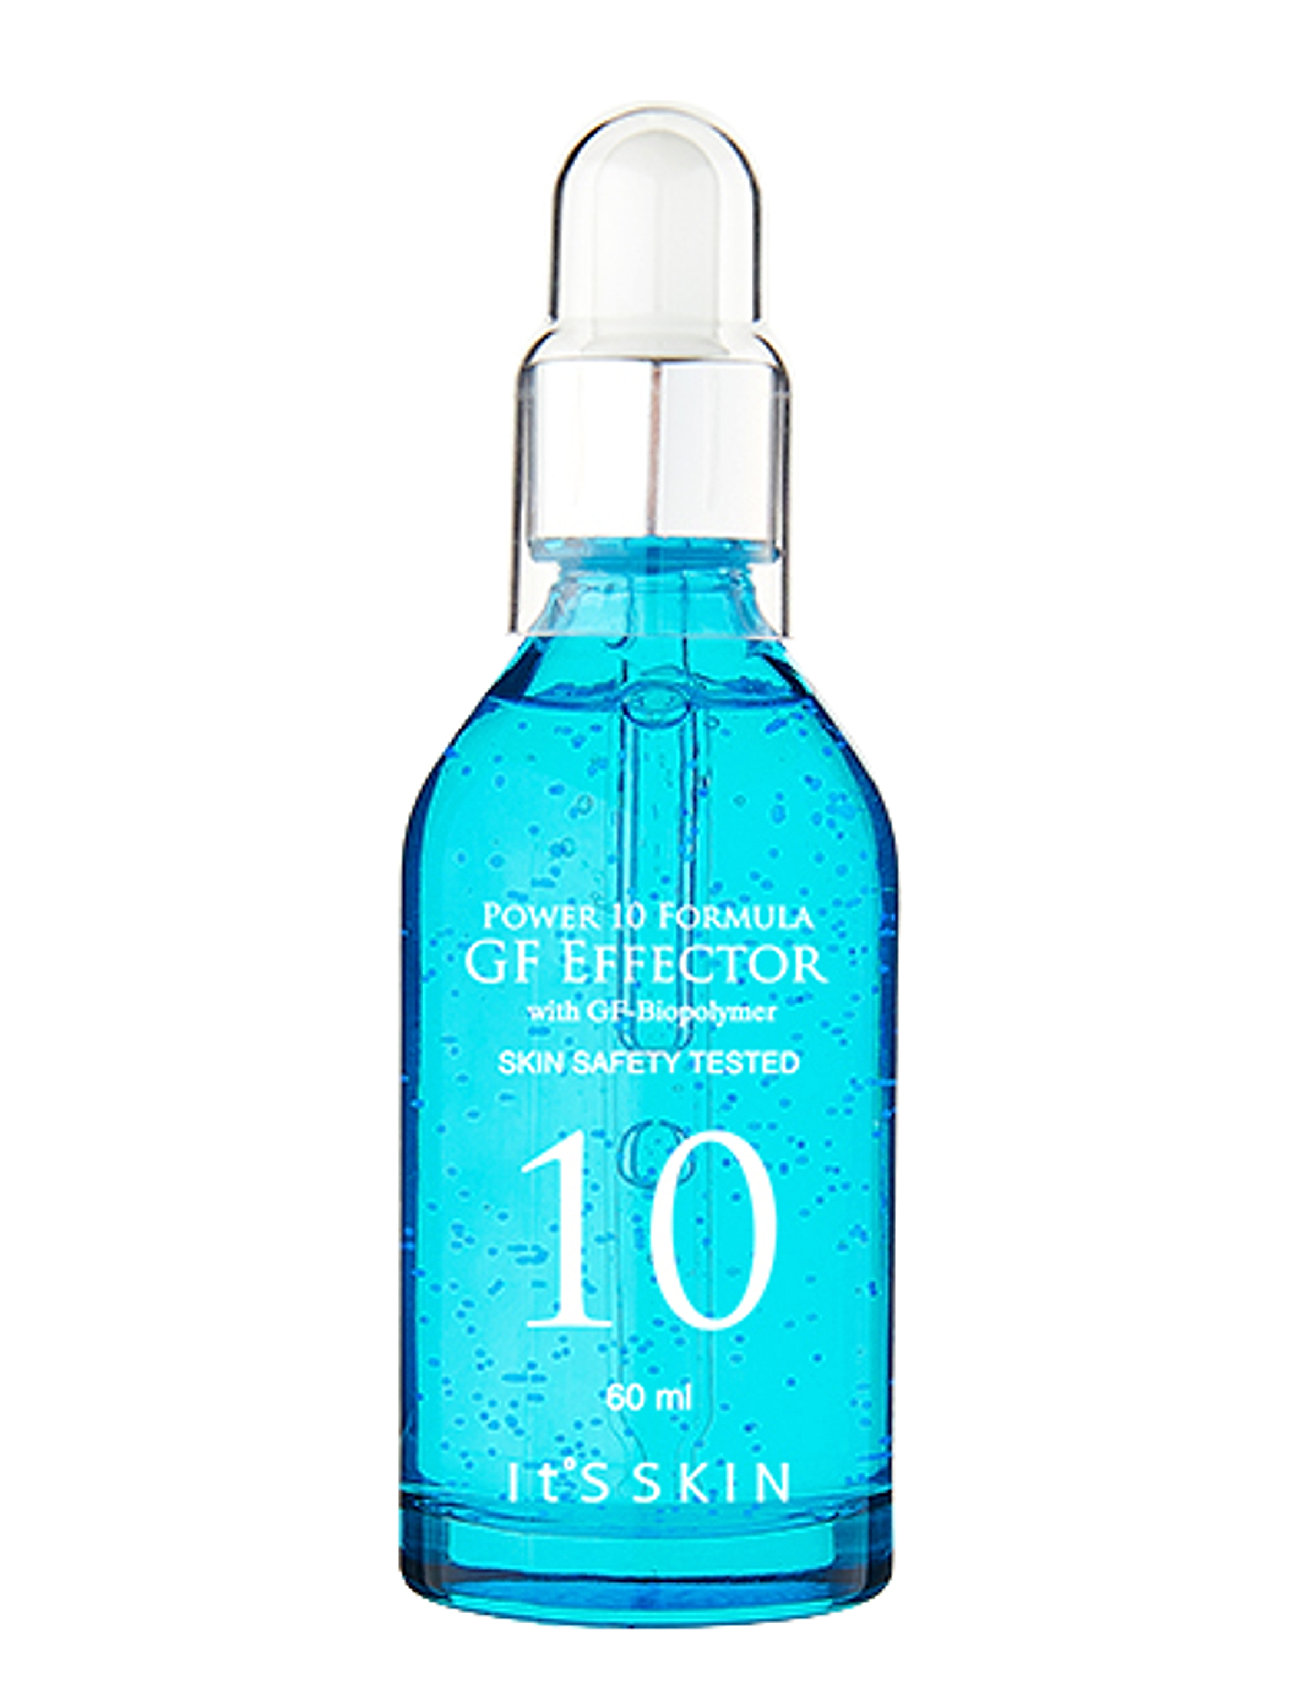 It'S SKIN It´S SKIN Power 10 Formula GF Effector Serum Super Size - CLEAR